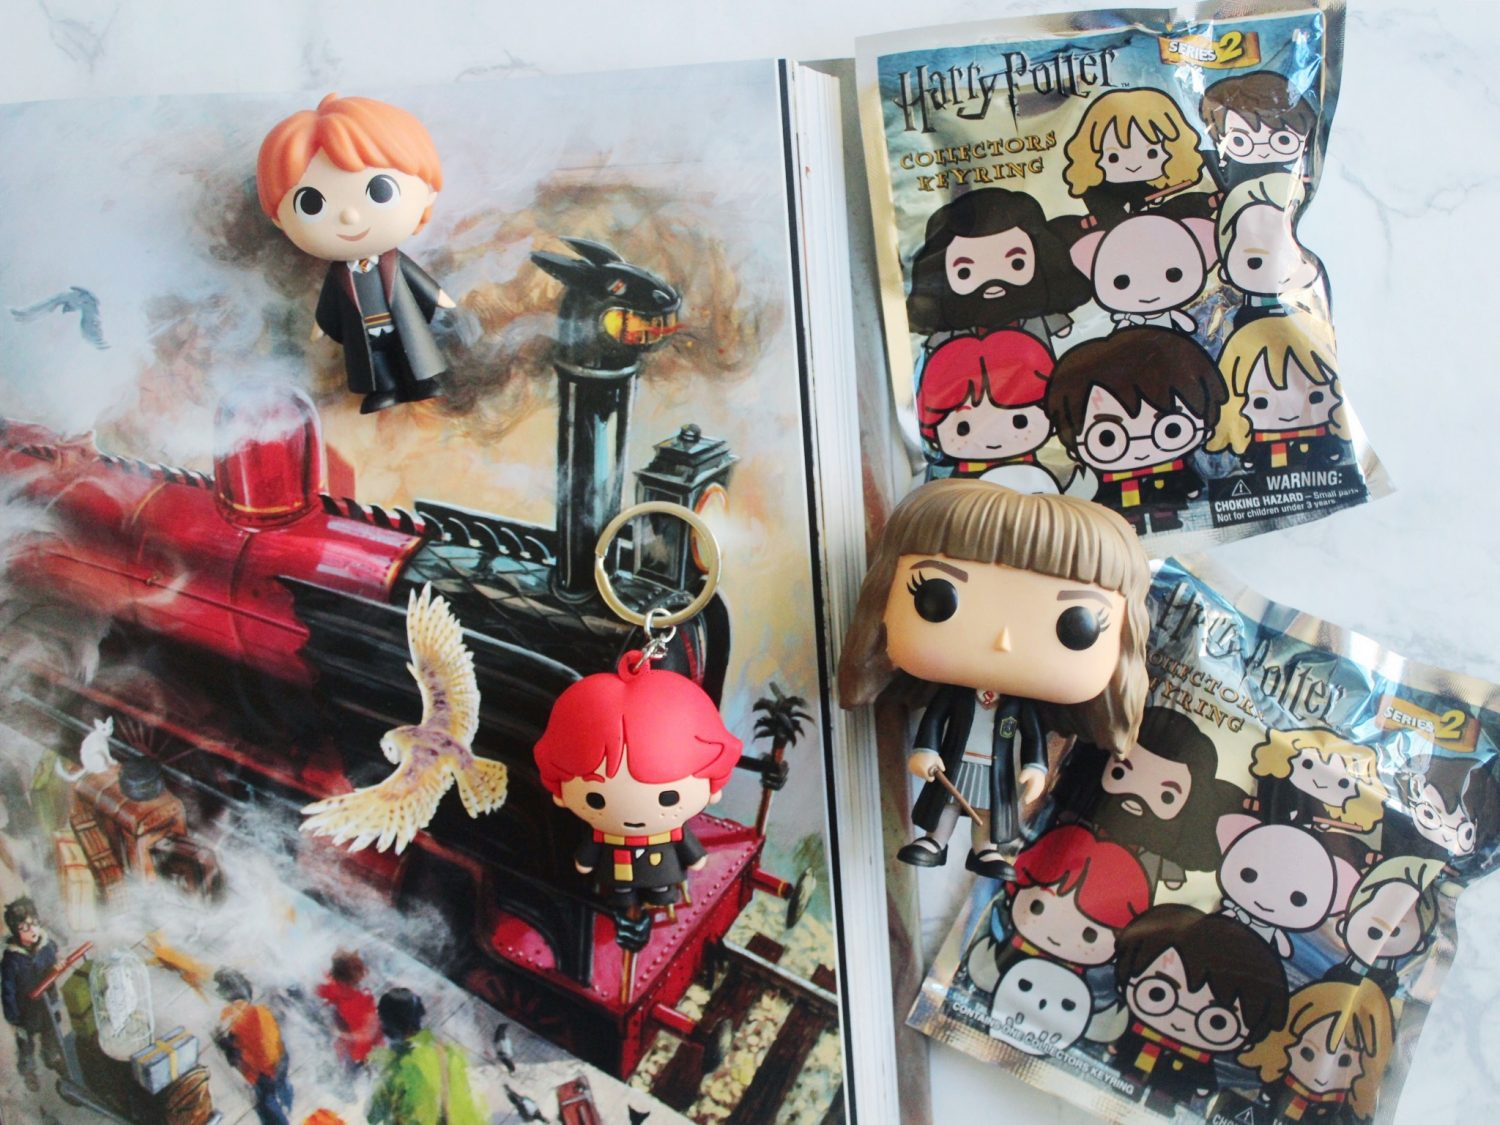 Harry Potter Figural Keyrings